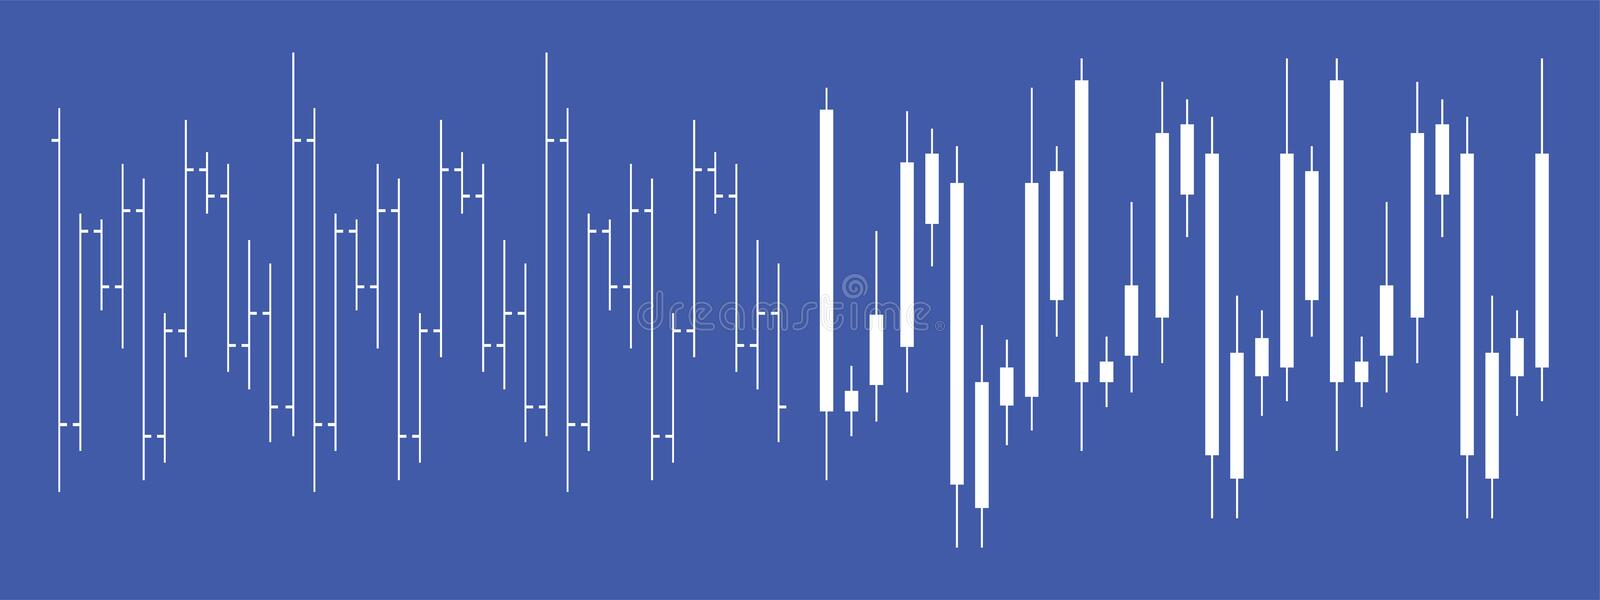 Stock exchange Forex candlestick chart royalty free illustration